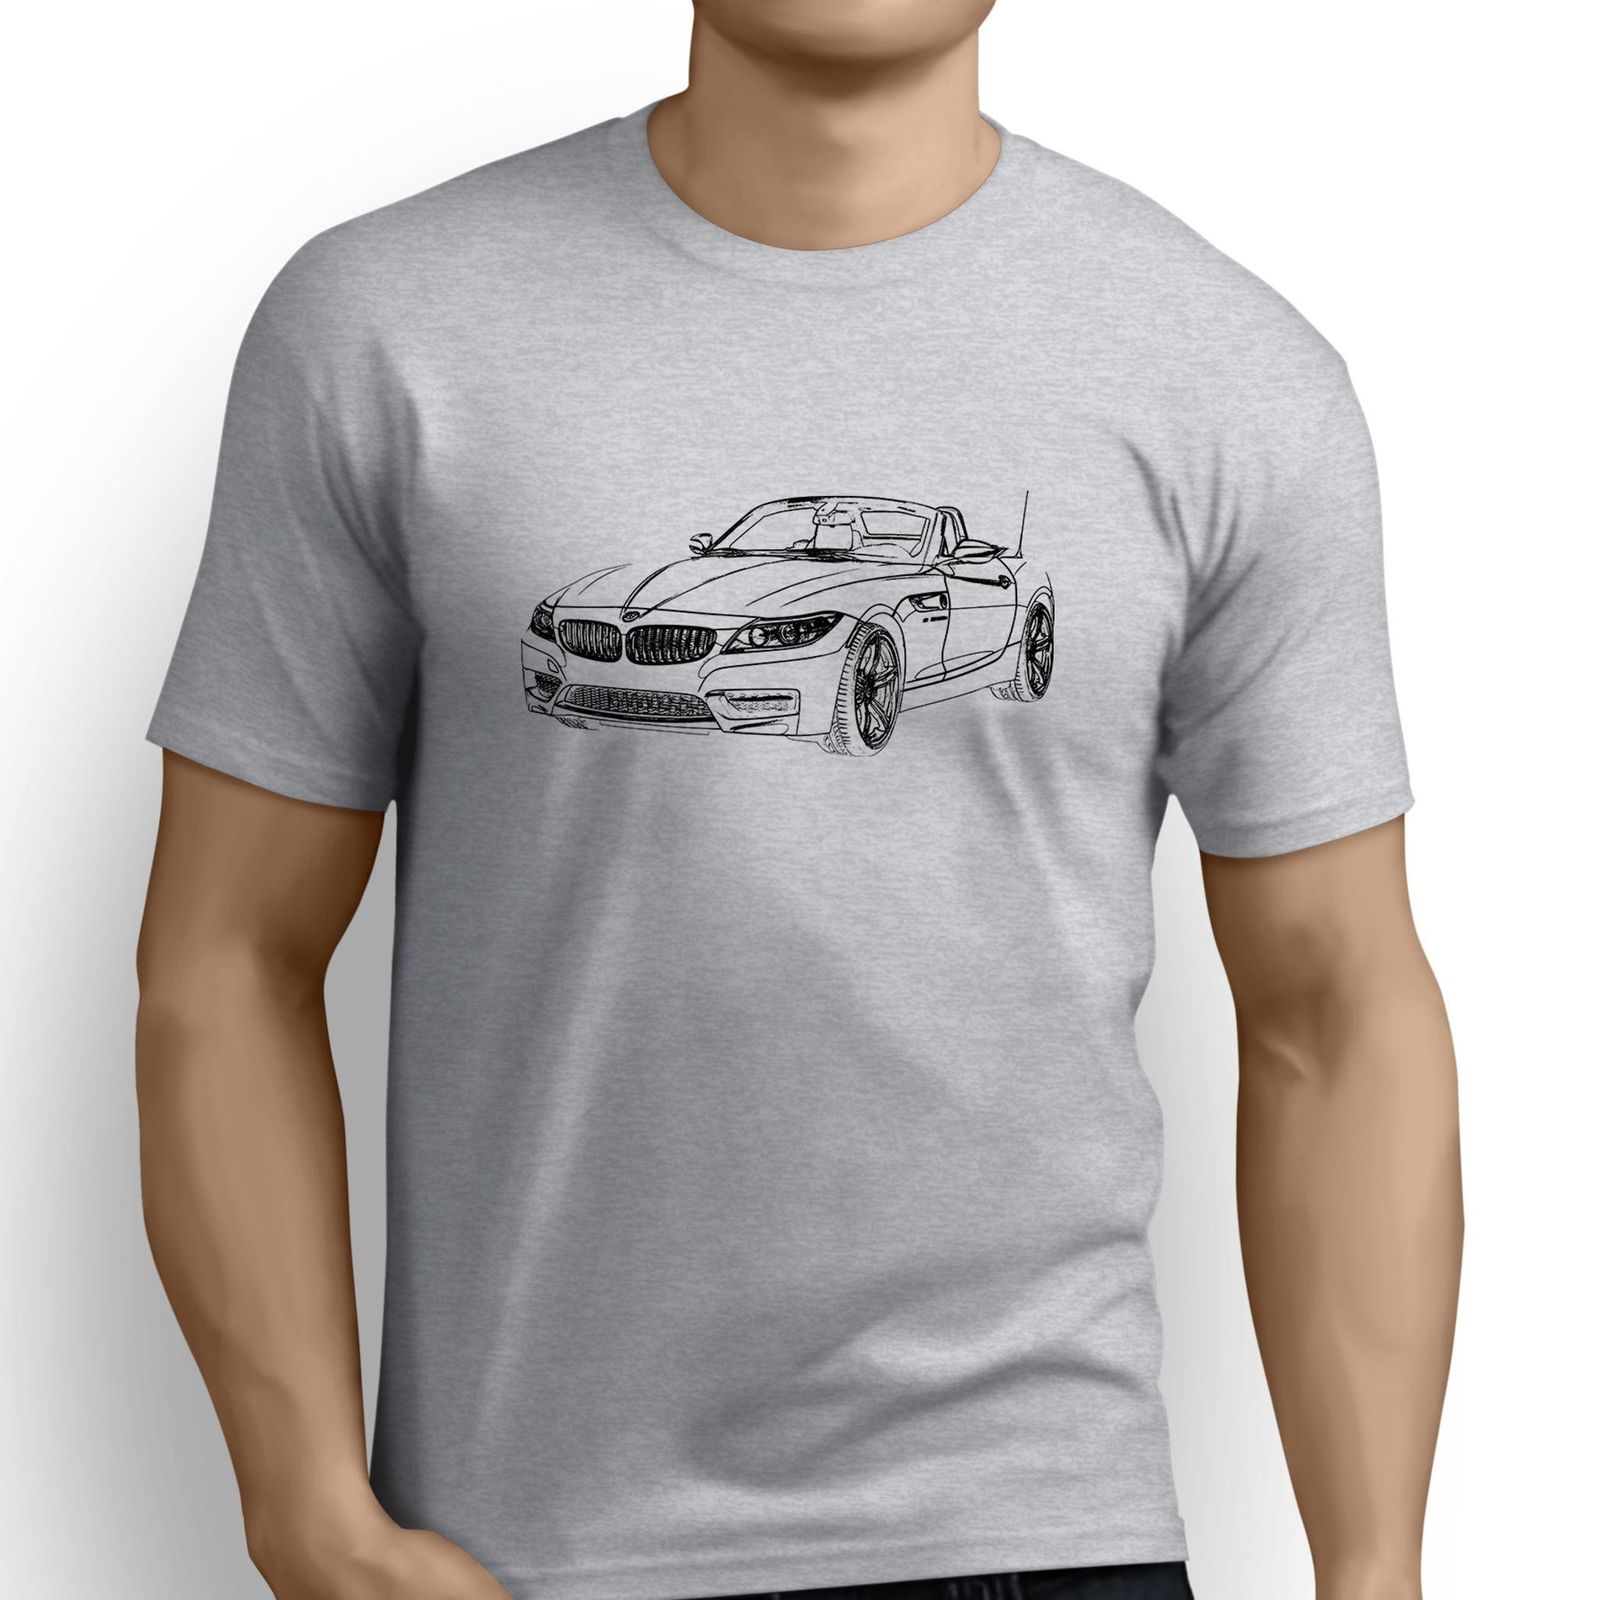 2018 Fashion Short Creative Printed T-Shirt Men'S Tee German Car Fans Z4 Inspired Car Art Mans Fitted T Shirts